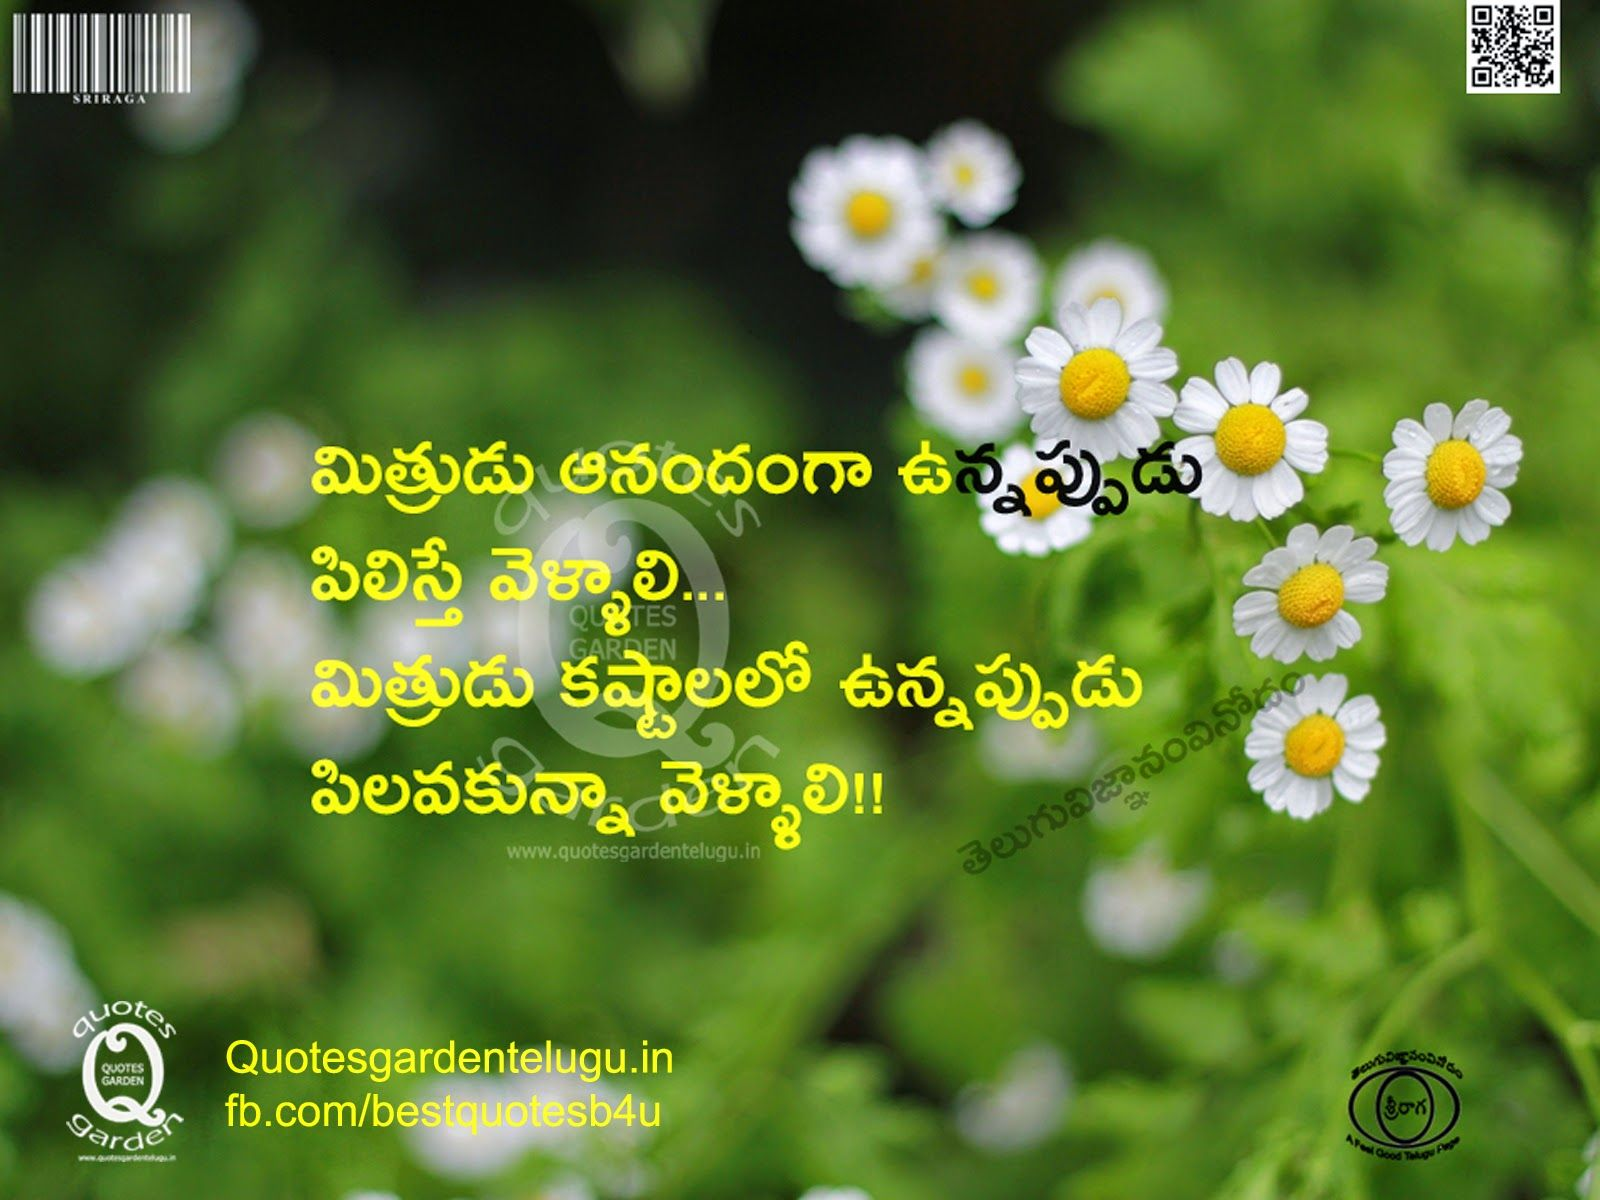 Best Telugu Friendship Quotes With Nice Wallpapers And Beautiful With Images Friendship Quotes Meant To Be Quotes Friendship Quotes In Telugu